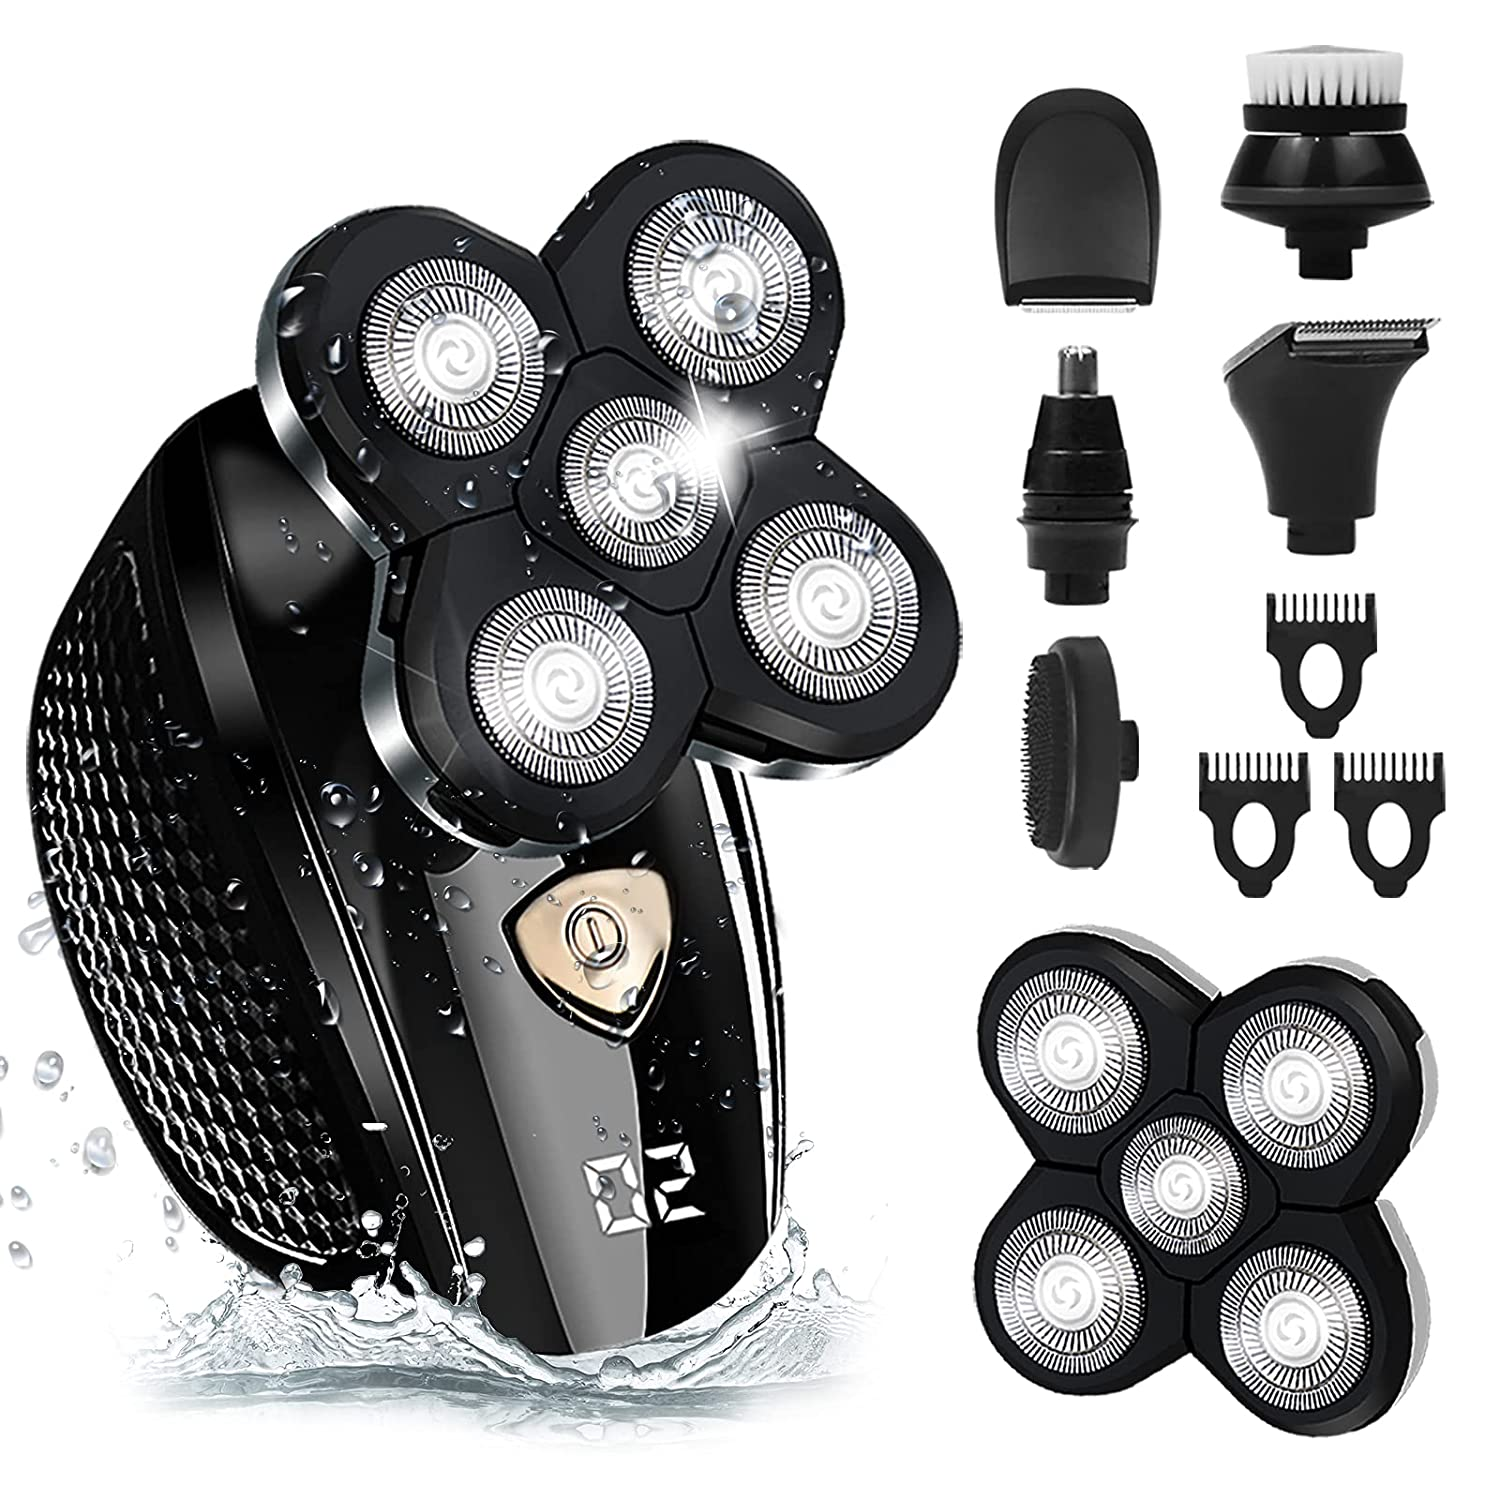 Head Shaver Upgrade Limited Special Price 6-in-1 shavers Freedom Portland Mall Gro Men for Bald